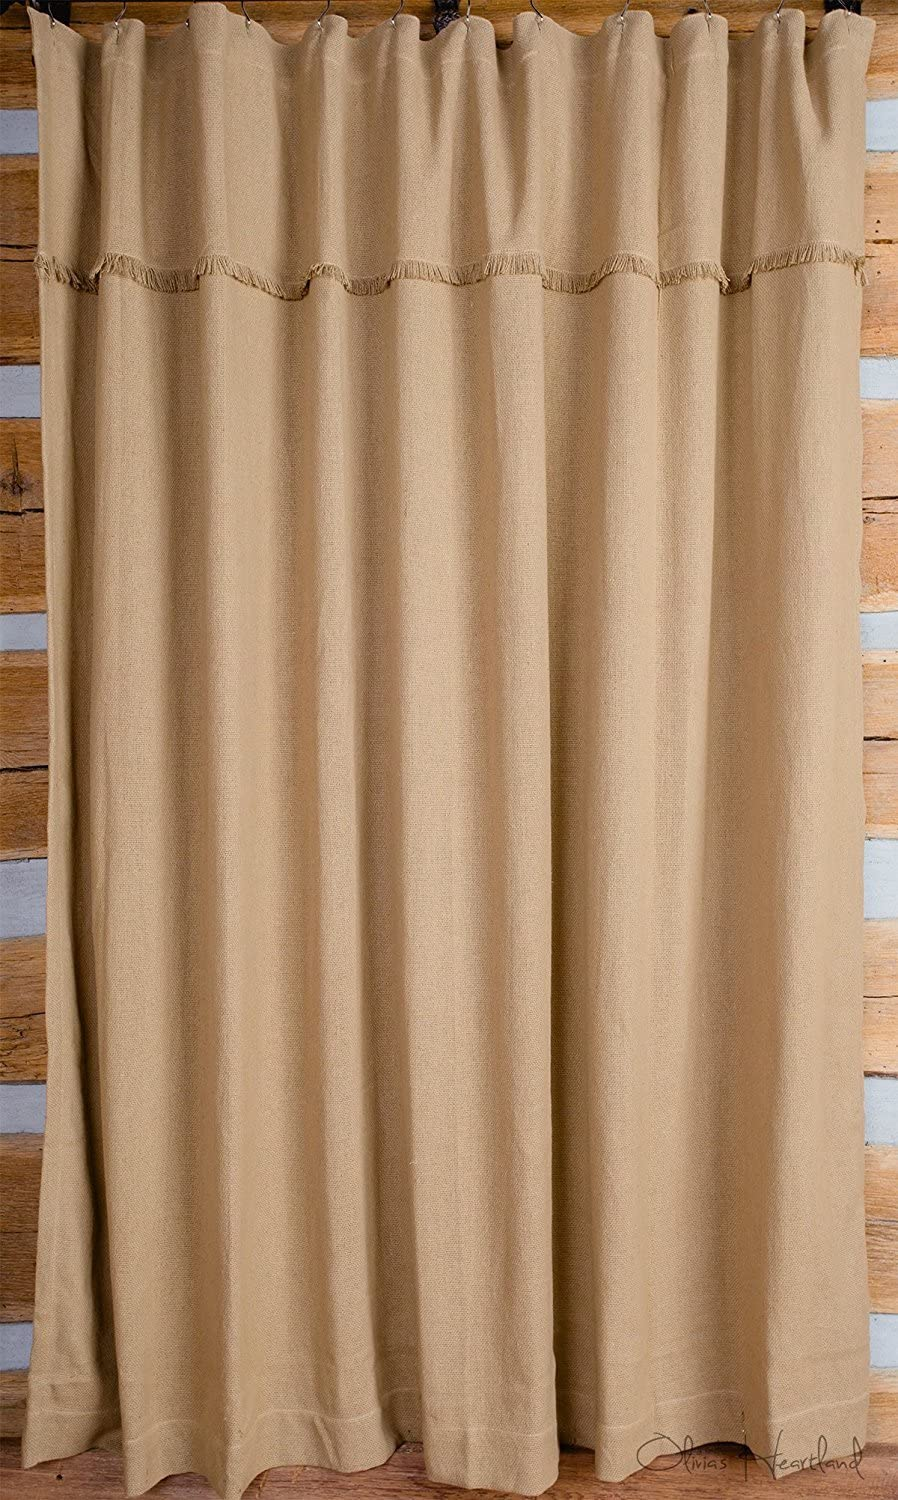 Olivia's 100% quality warranty! Heartland Deluxe Burlap Tan Curtain Max 49% OFF Natural Shower